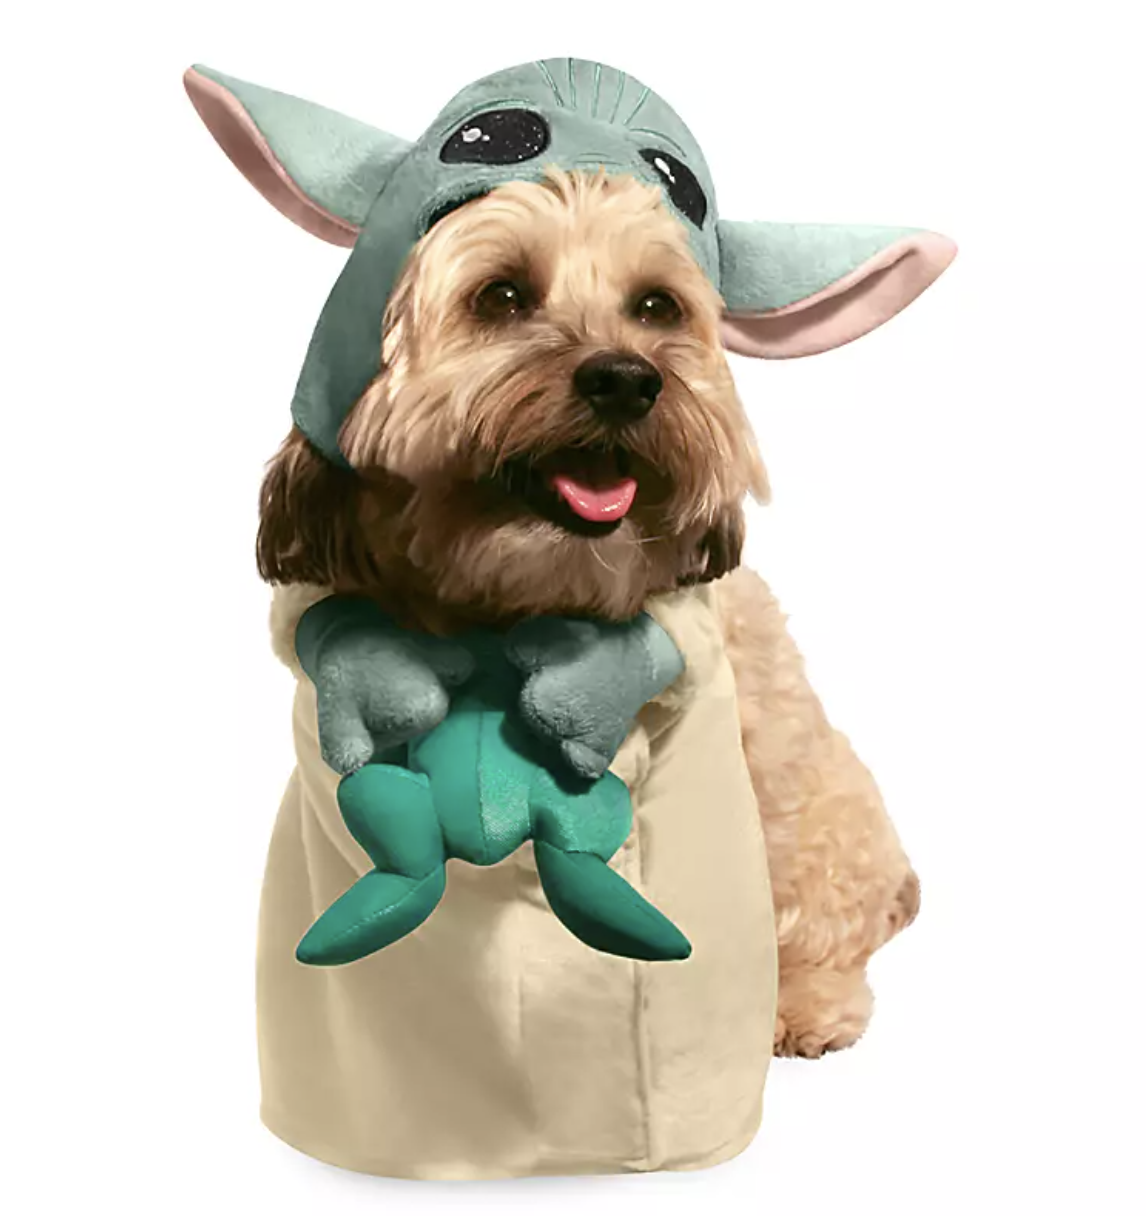 a small dog wearing a baby yoda costume complete with a hood and making the dog look like they have tiny hands holding a frog